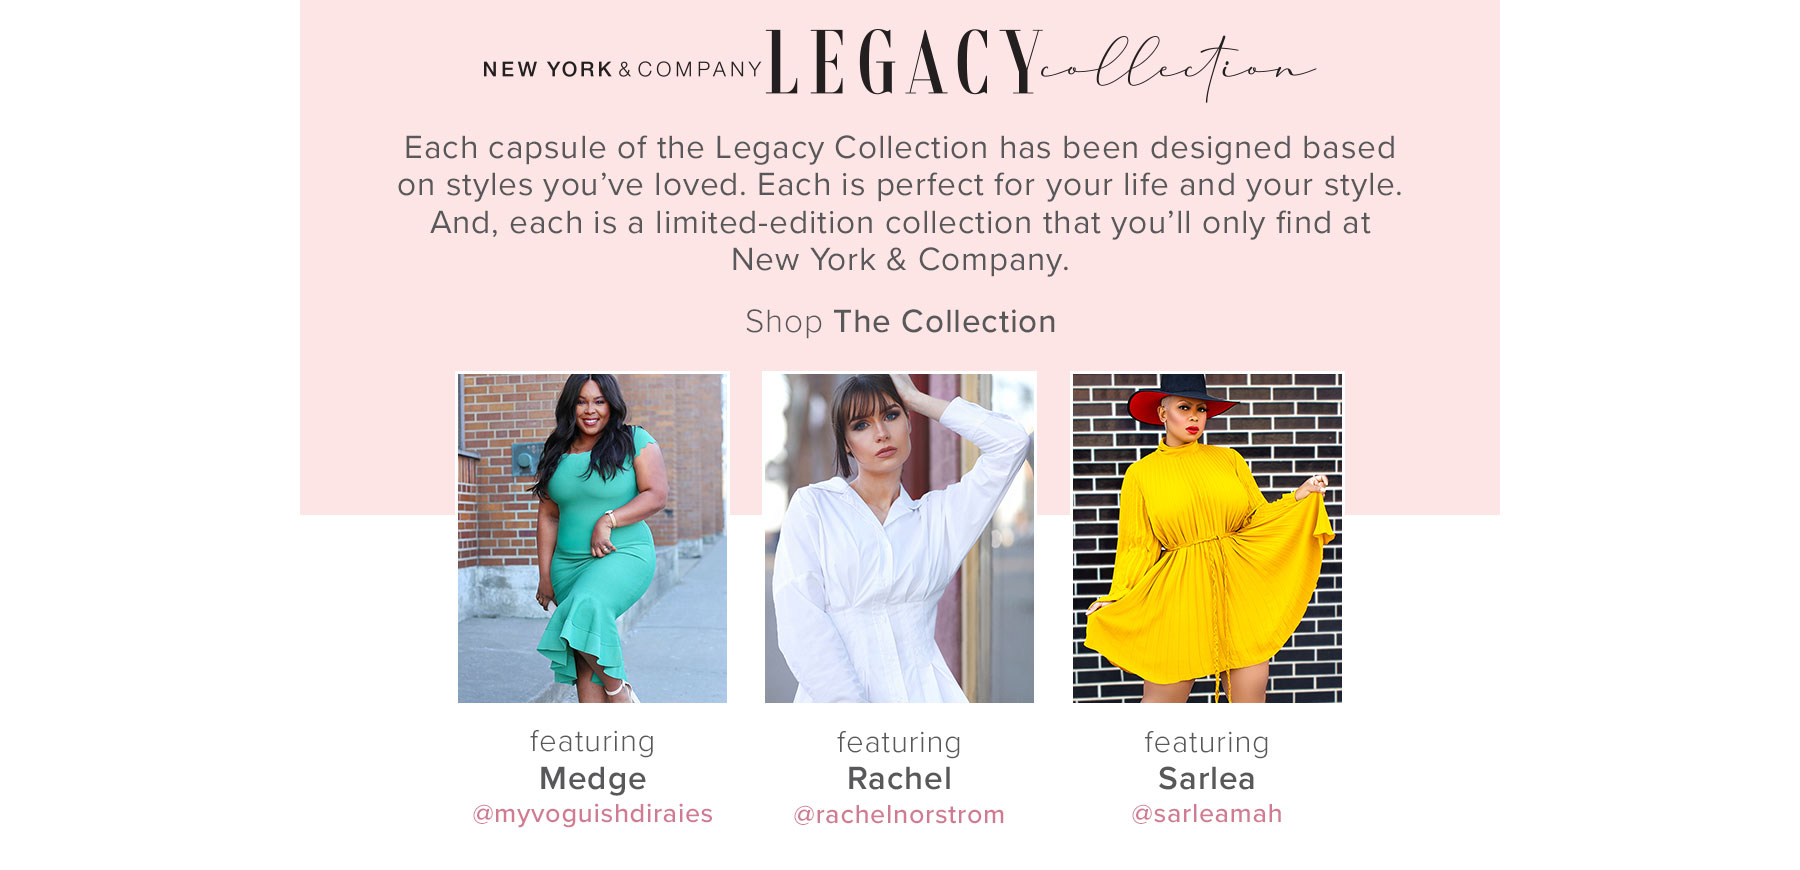 Shop The NY&C Legacy Collection